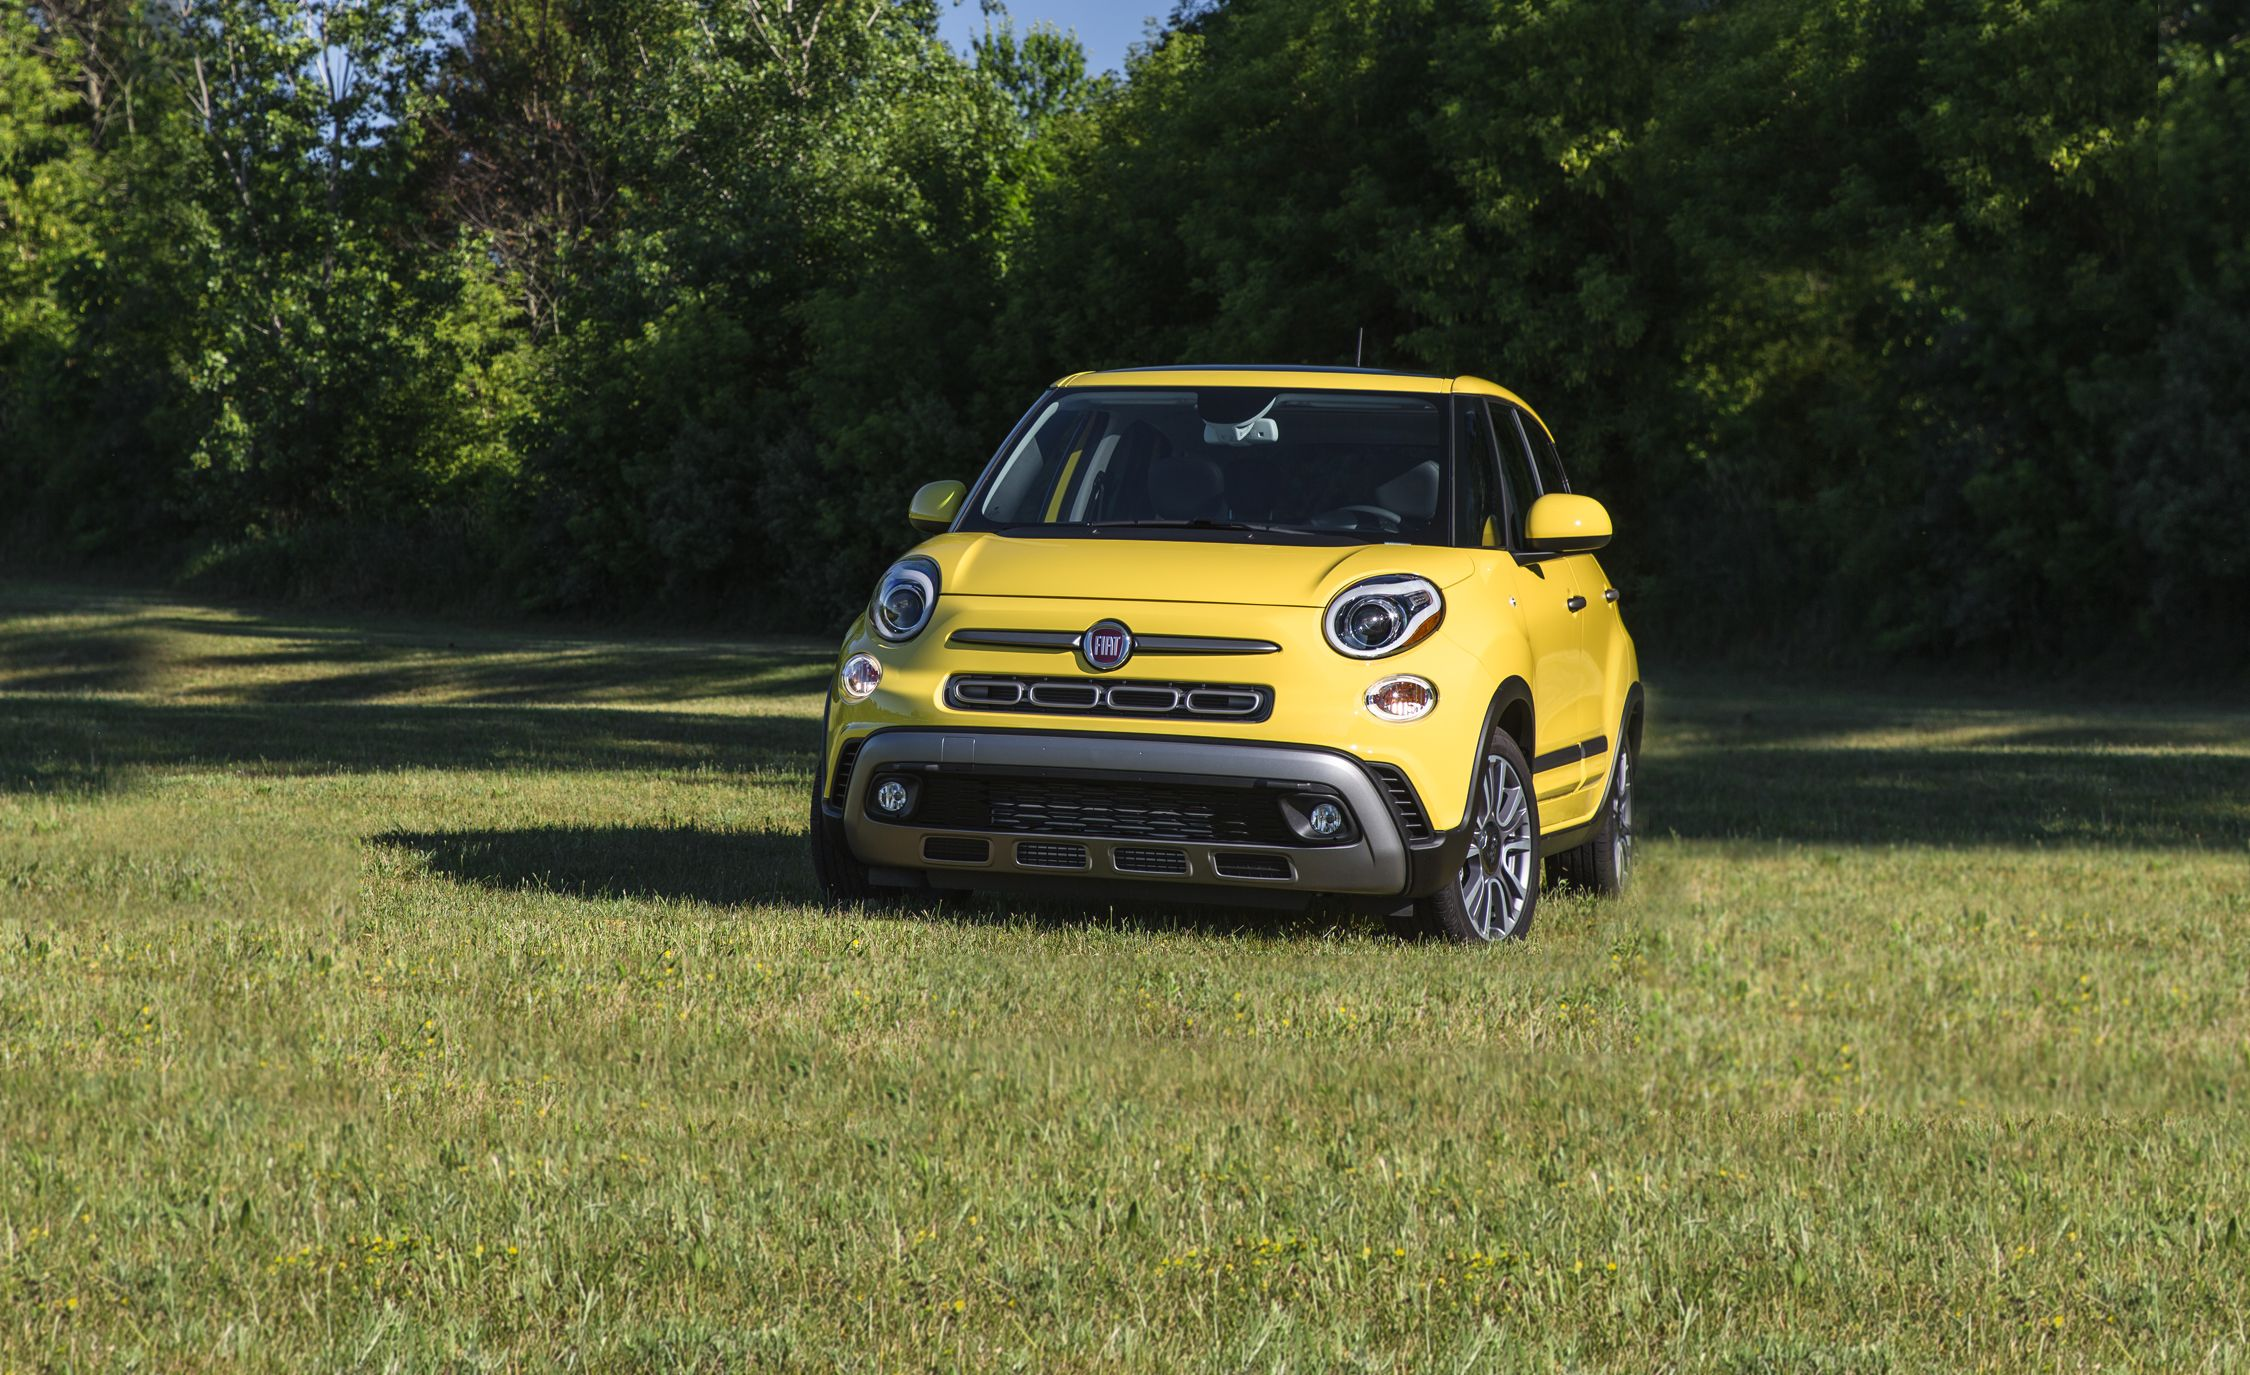 2018 Fiat 500L   Review   Car and Driver